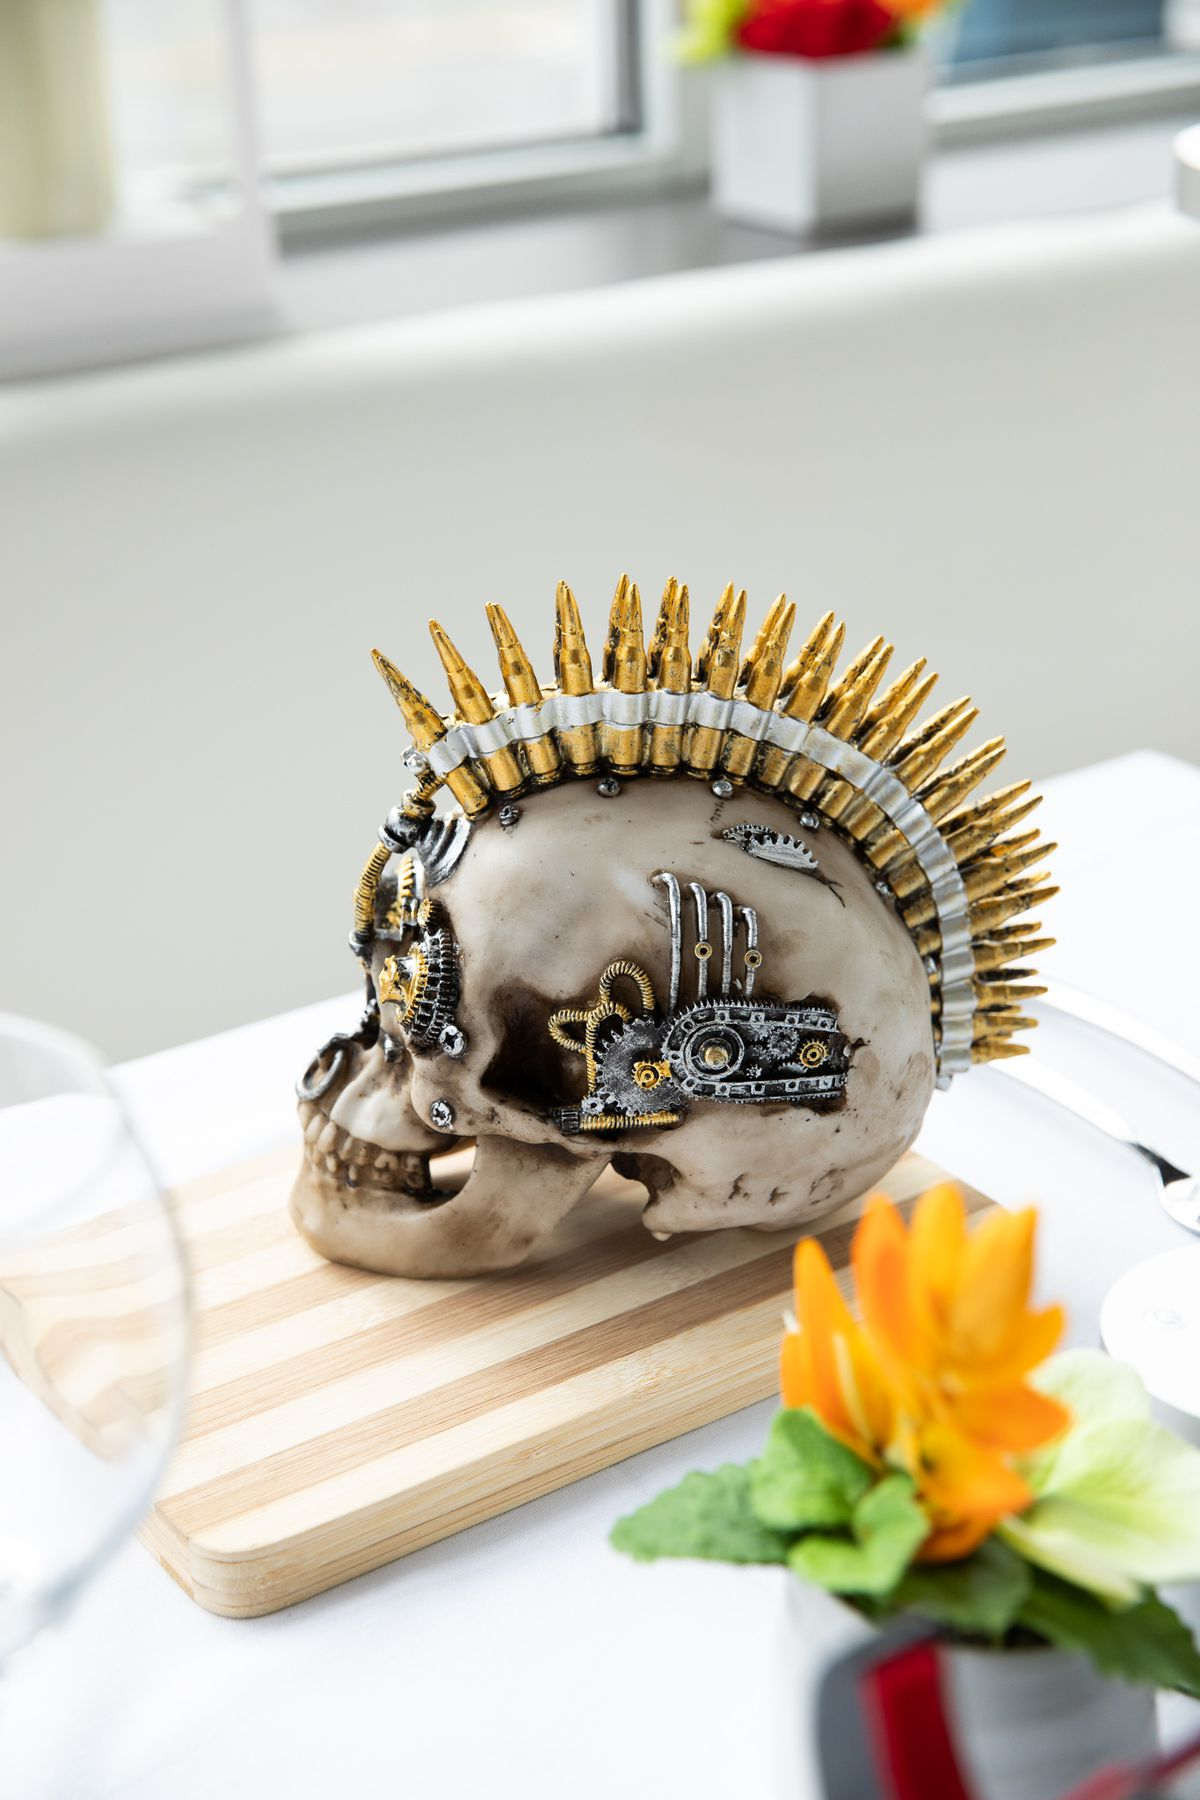 A silver skull on a cutting board with a bullet casing mohawk